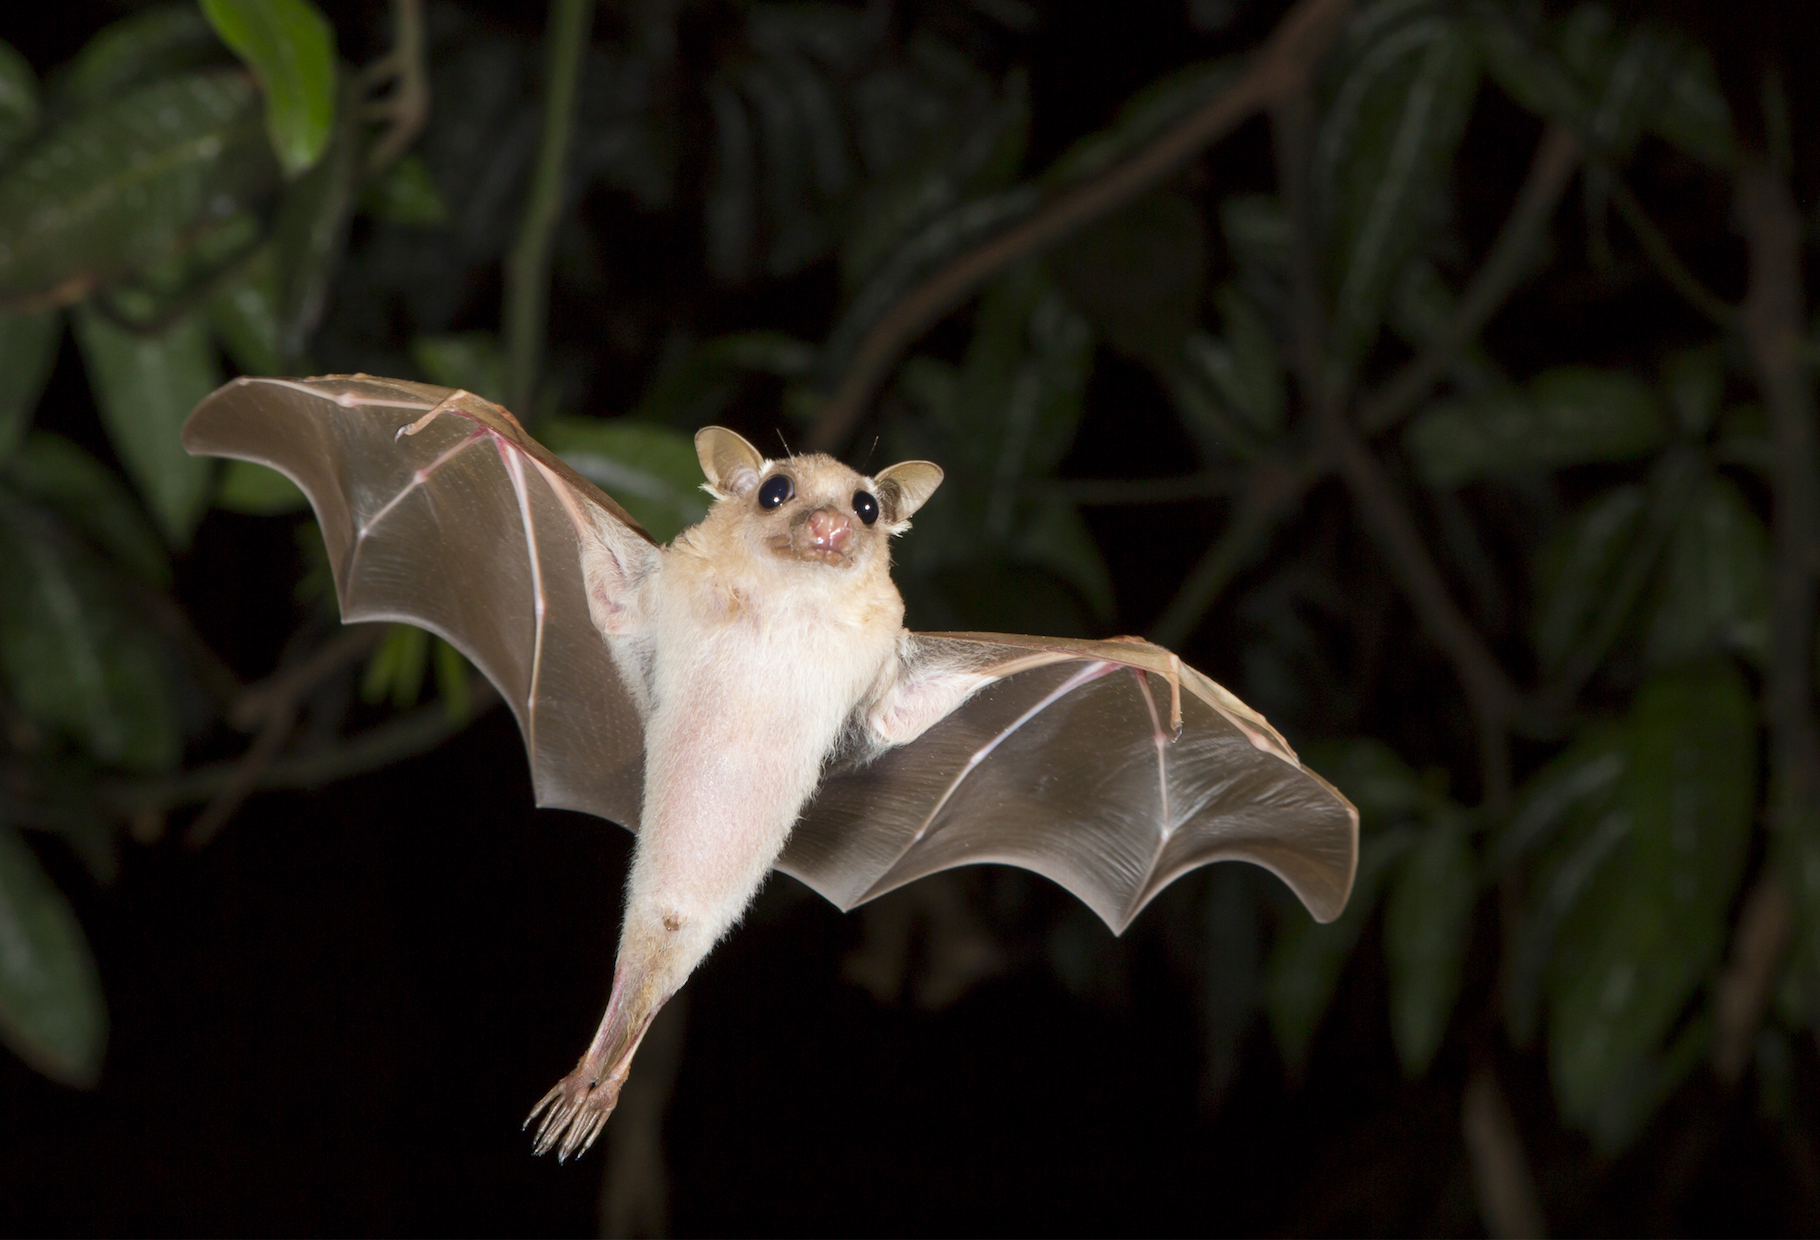 Bats carry a significantly higher proportion of viruses able to infect people than any other group of mammals, according to a new study